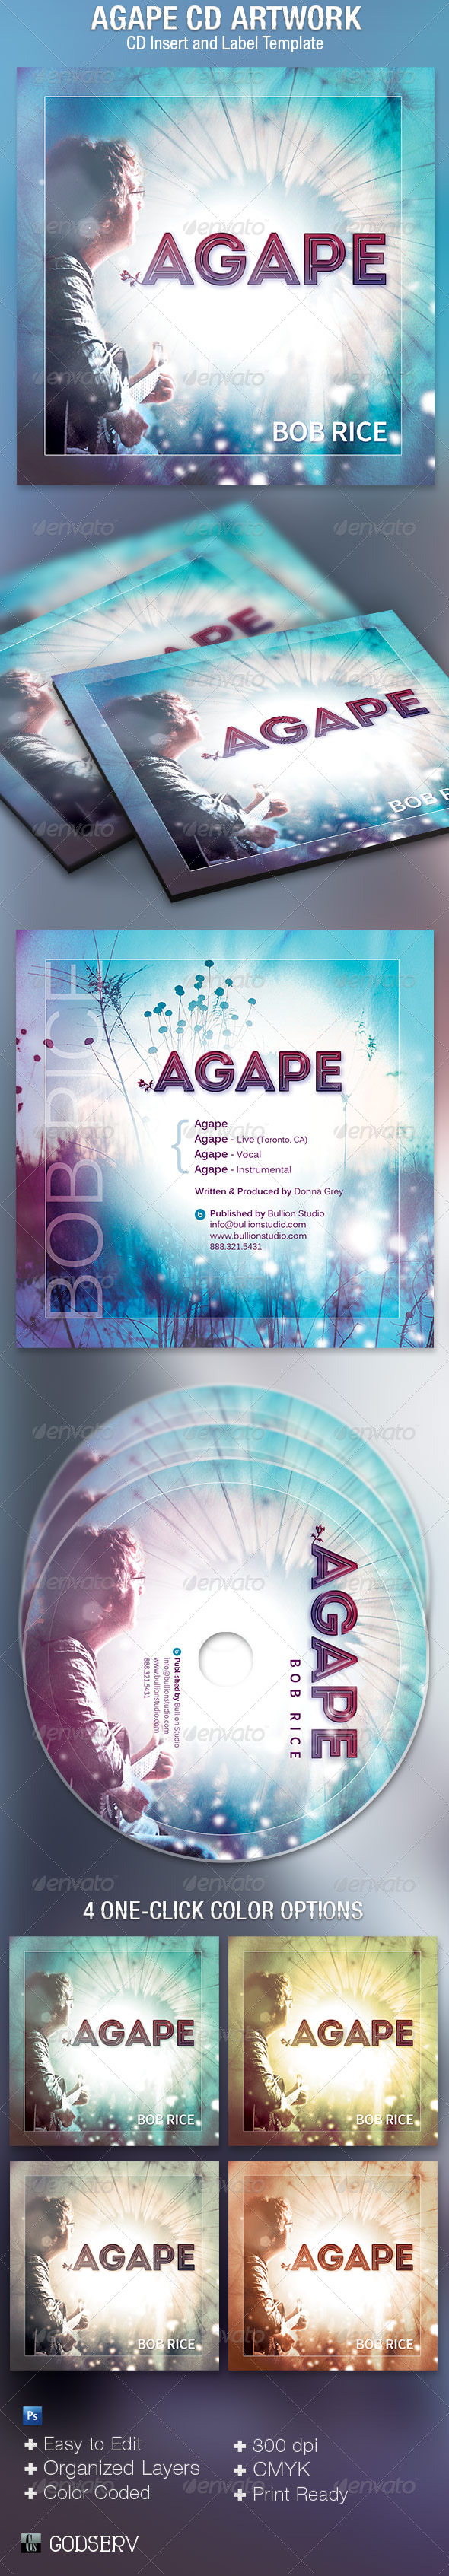 GraphicRiver Agape CD Artwork Template 5206367